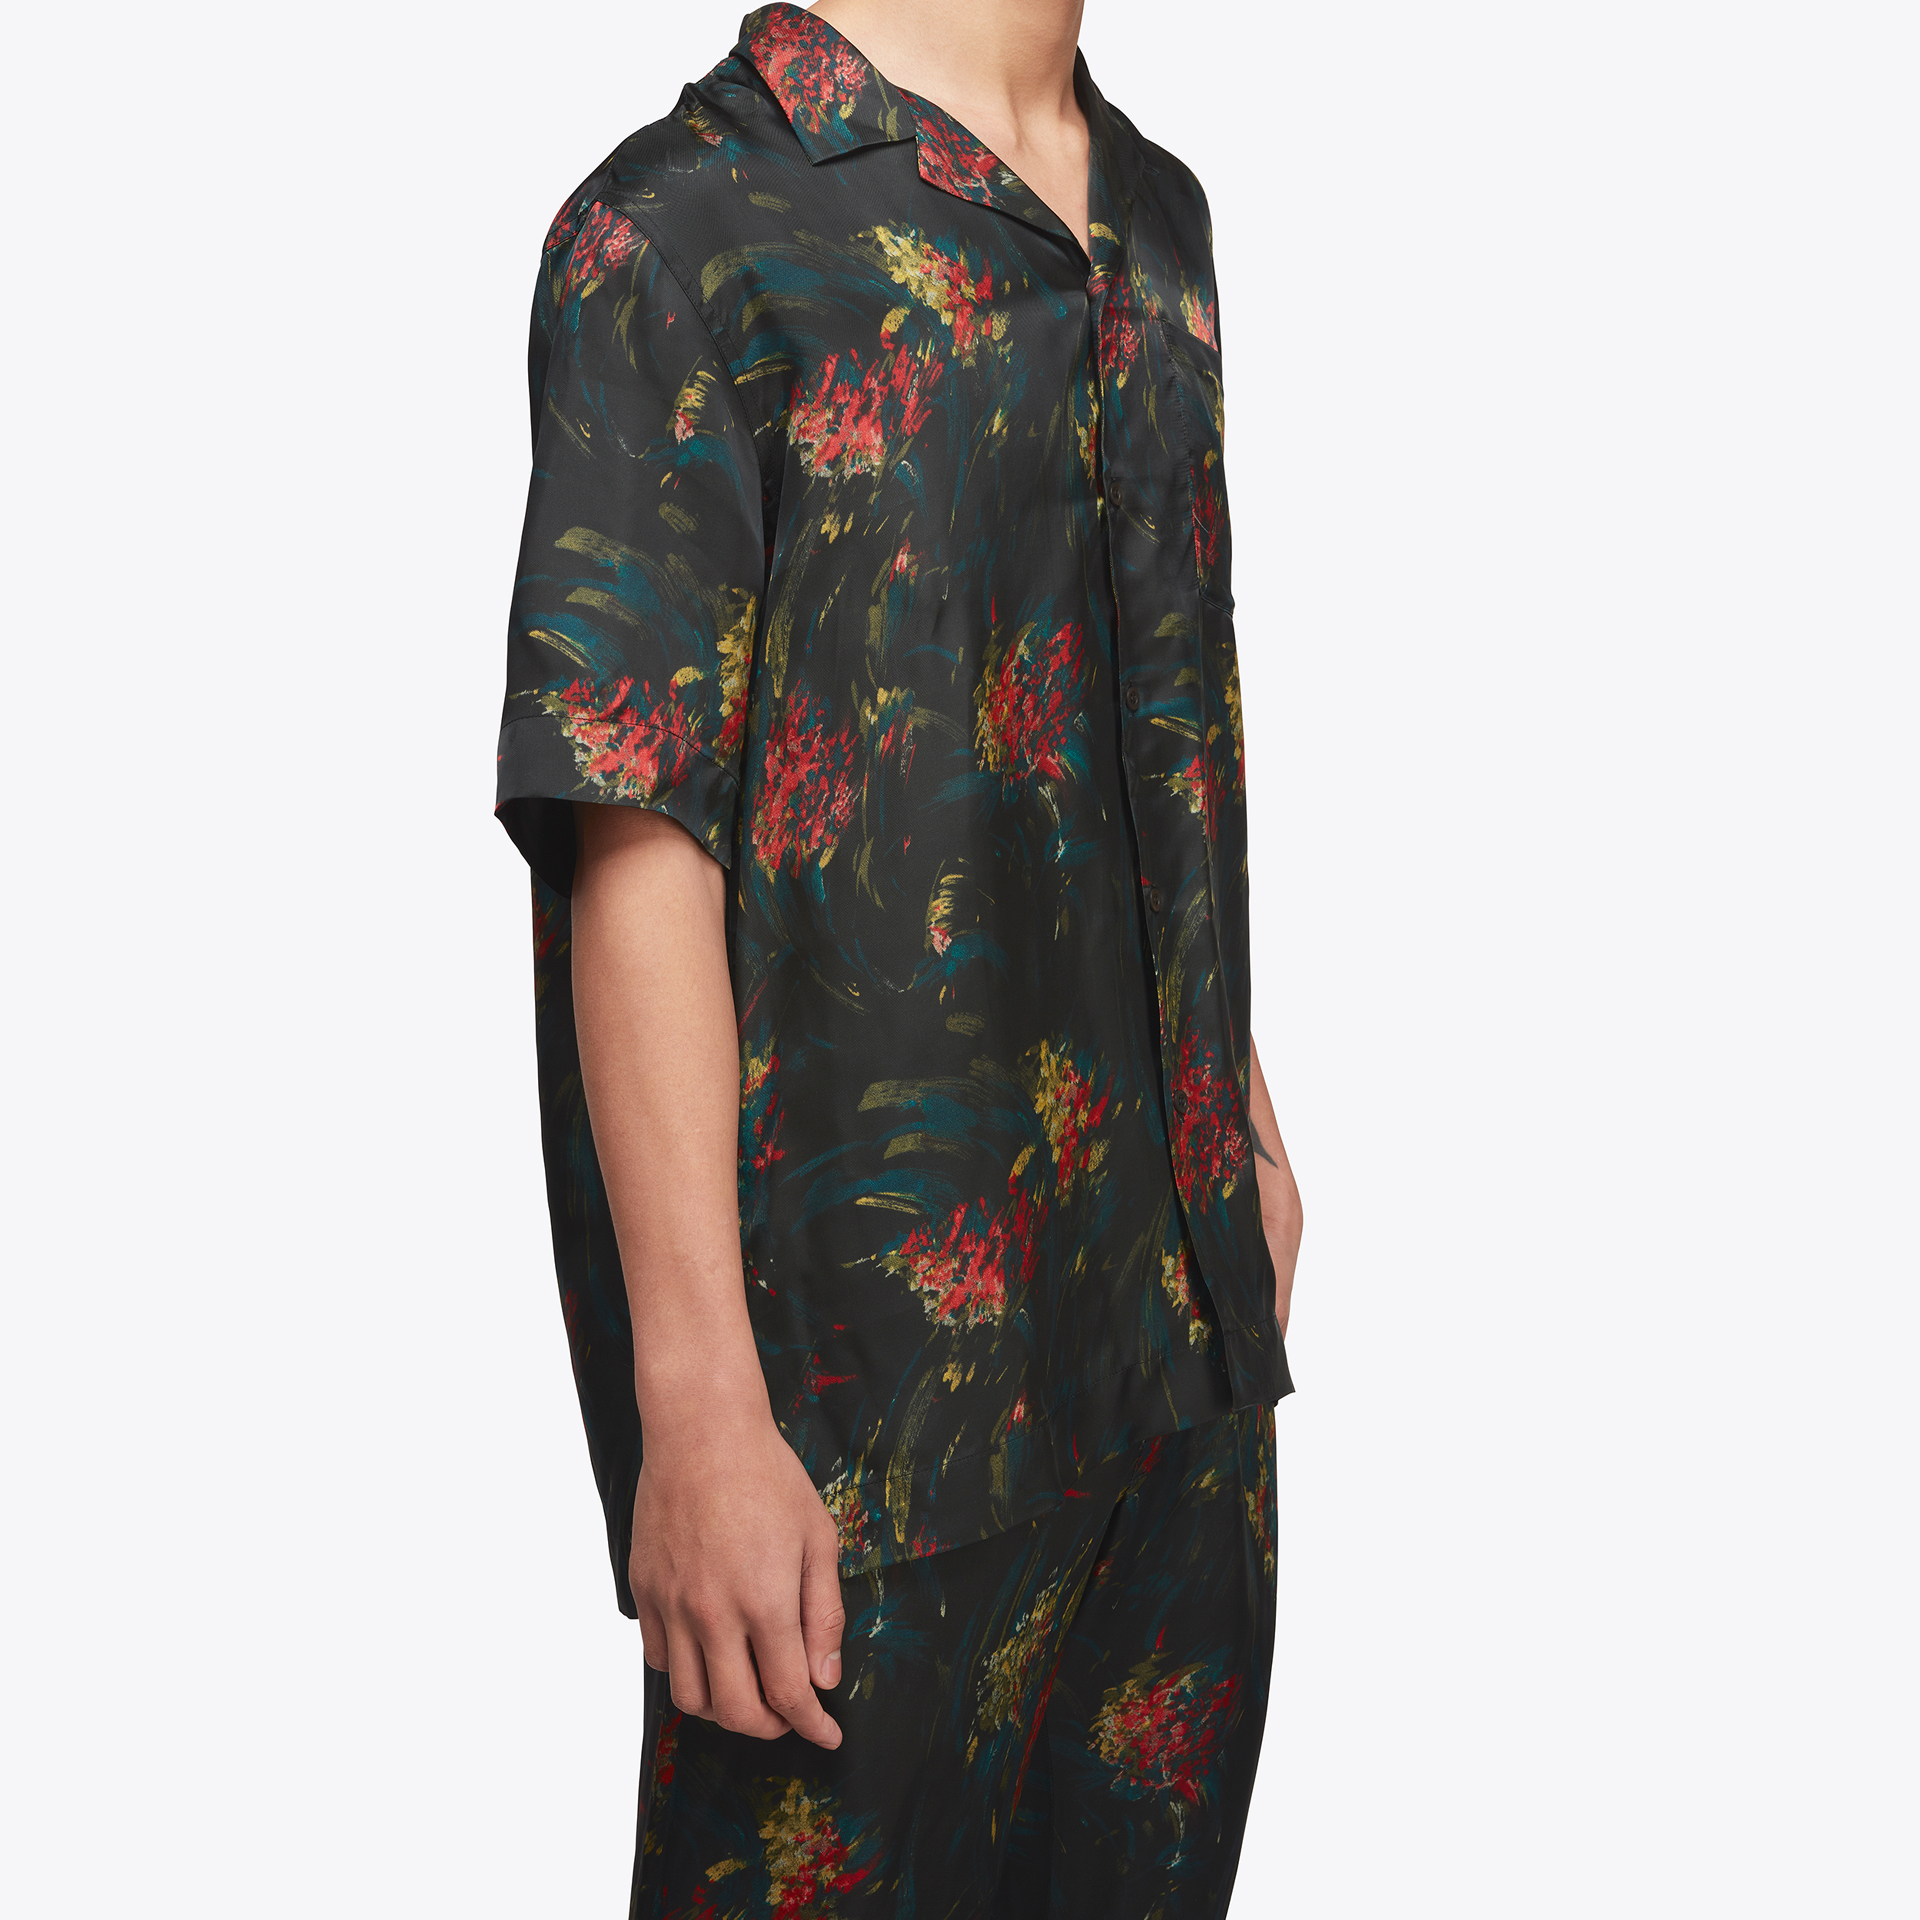 t-shirt with floral pattern